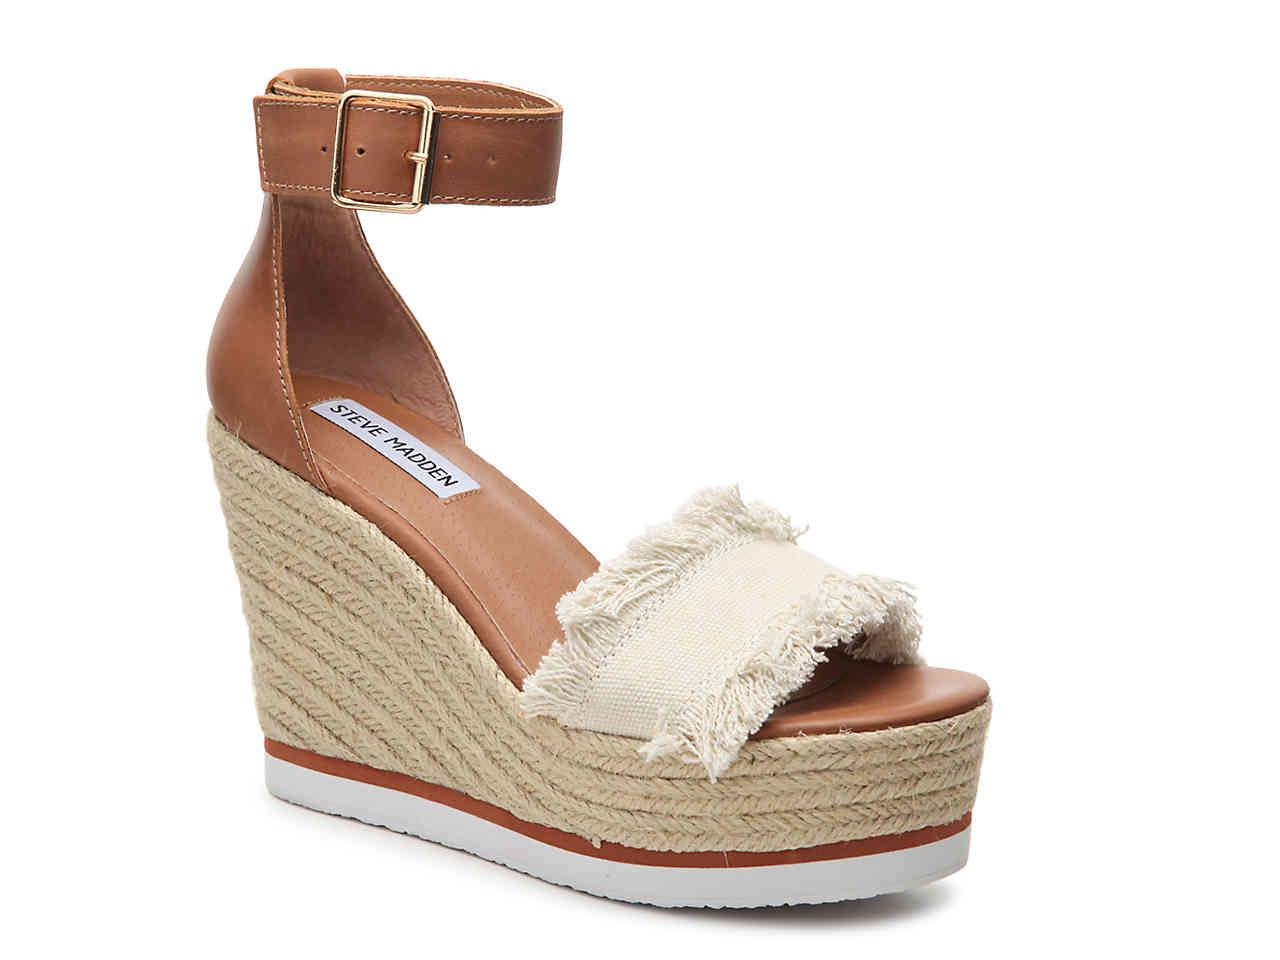 bf71c440bfb Lyst - Steve Madden Valley Wedge Sandal in Natural